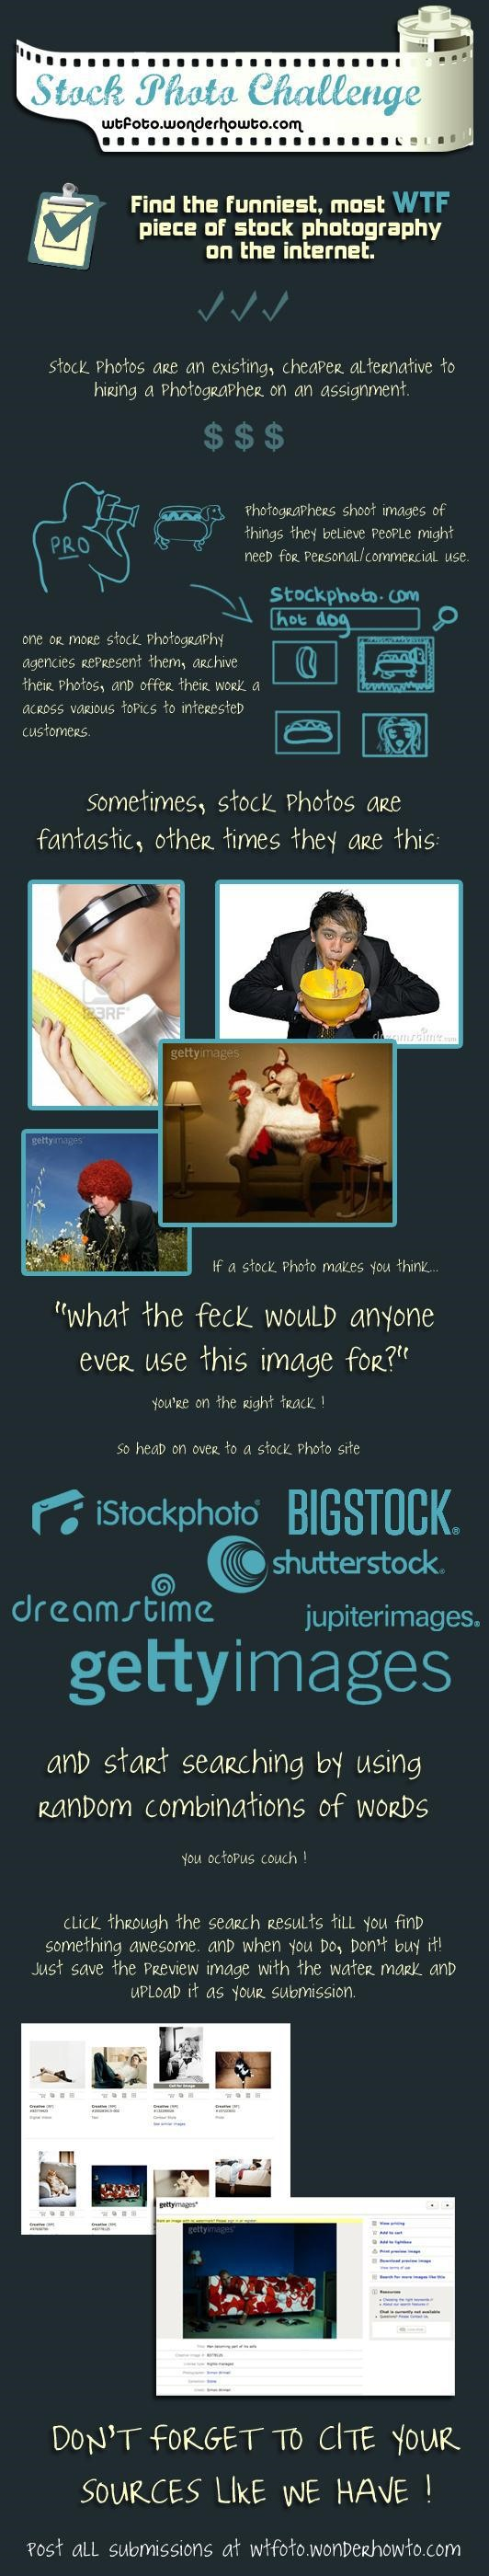 WTFoto Stock Photo Challenge! Find the Funniest WTF Stock Image Ever